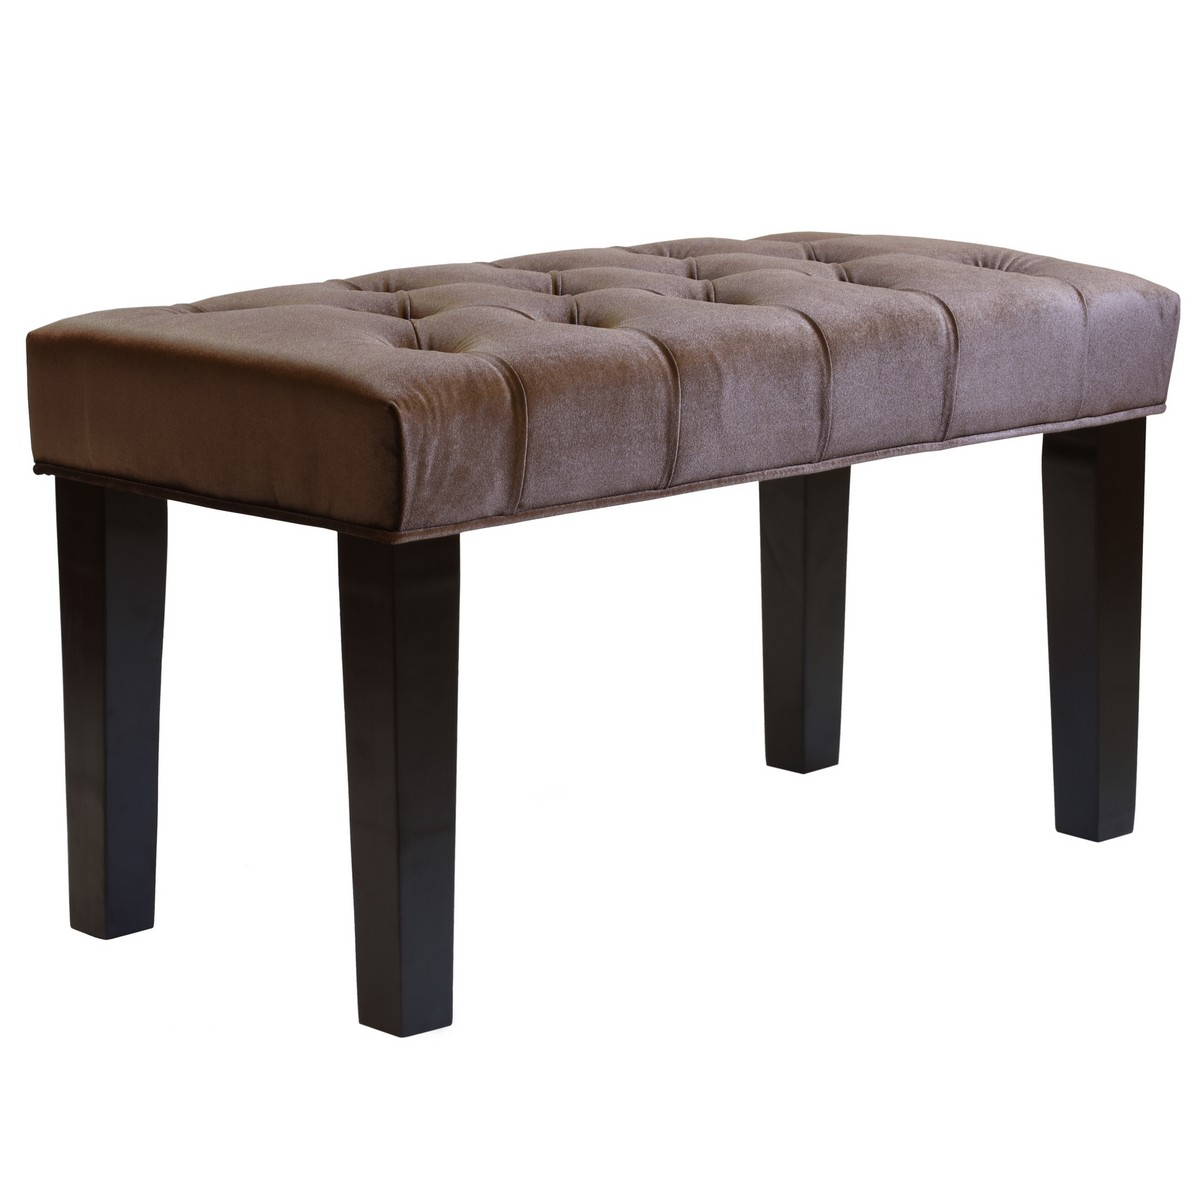 Armen Living Marilyn Bench 36 Inch In Brown Velvet Al Lc2608tube36br At